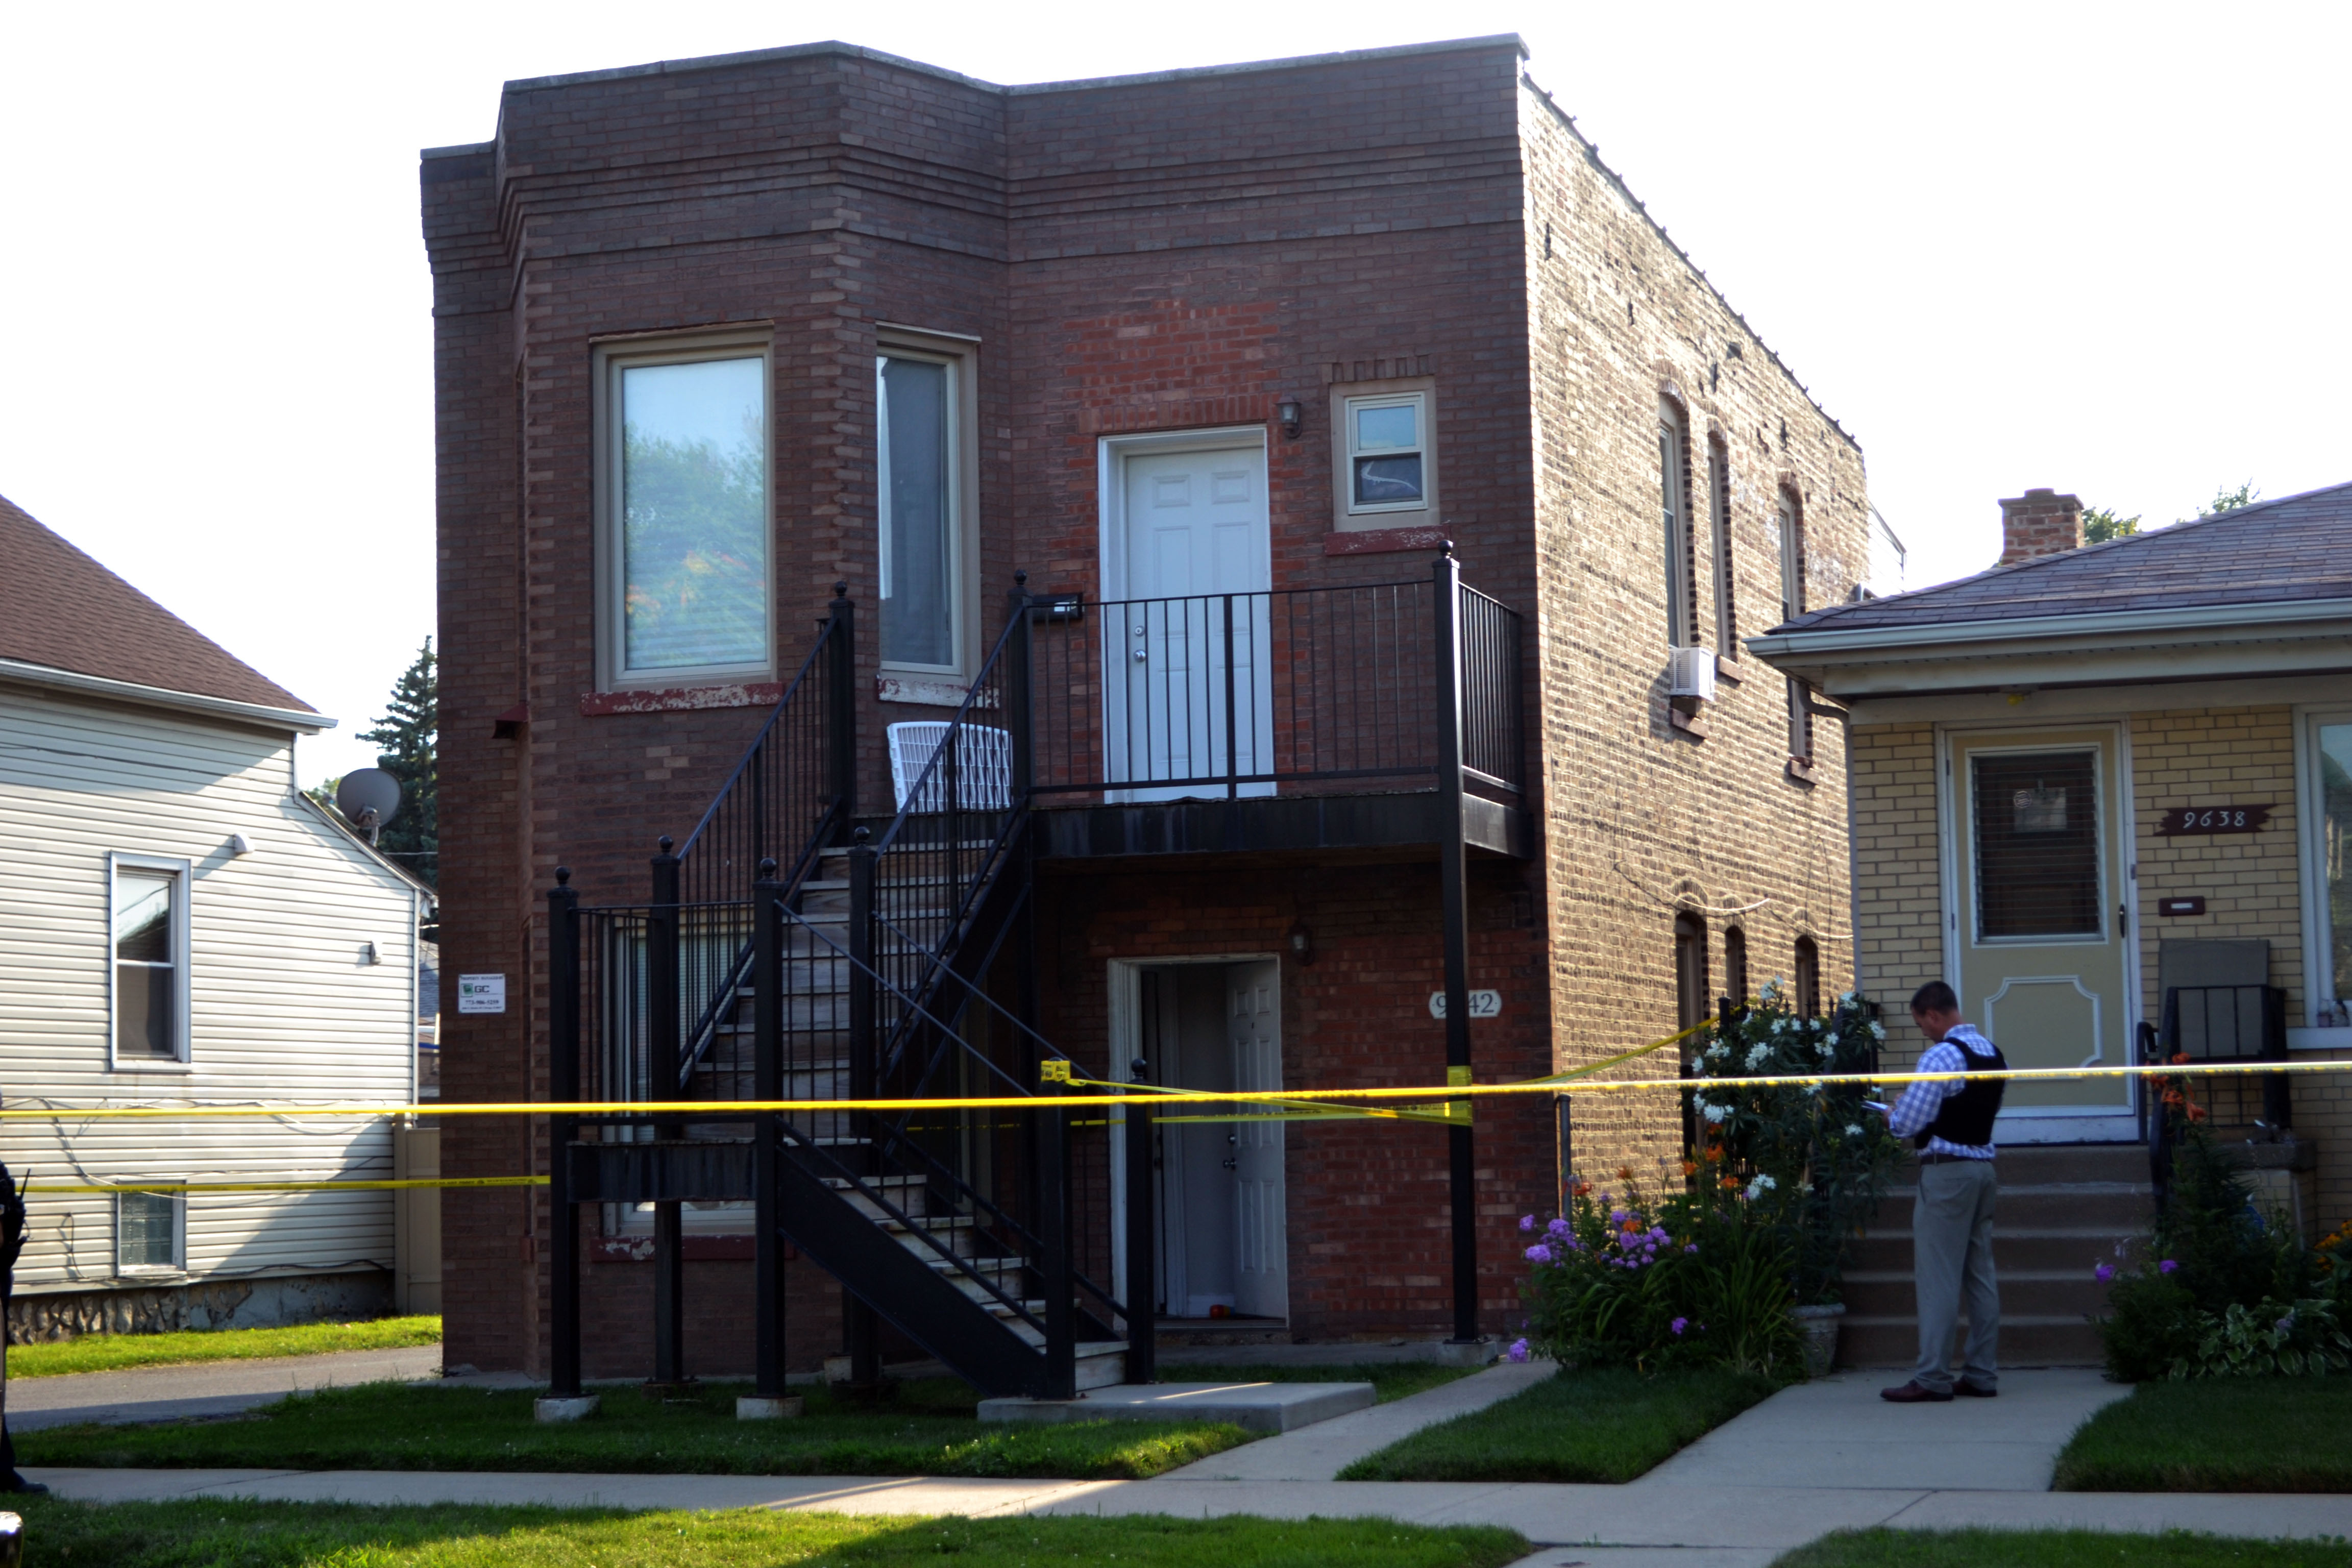 Chicago police investigate the two-story brown brick buidling where a 3 year old child was fatally shot, Sunday afternoon, in the 9600 block of South Escanaba Ave.